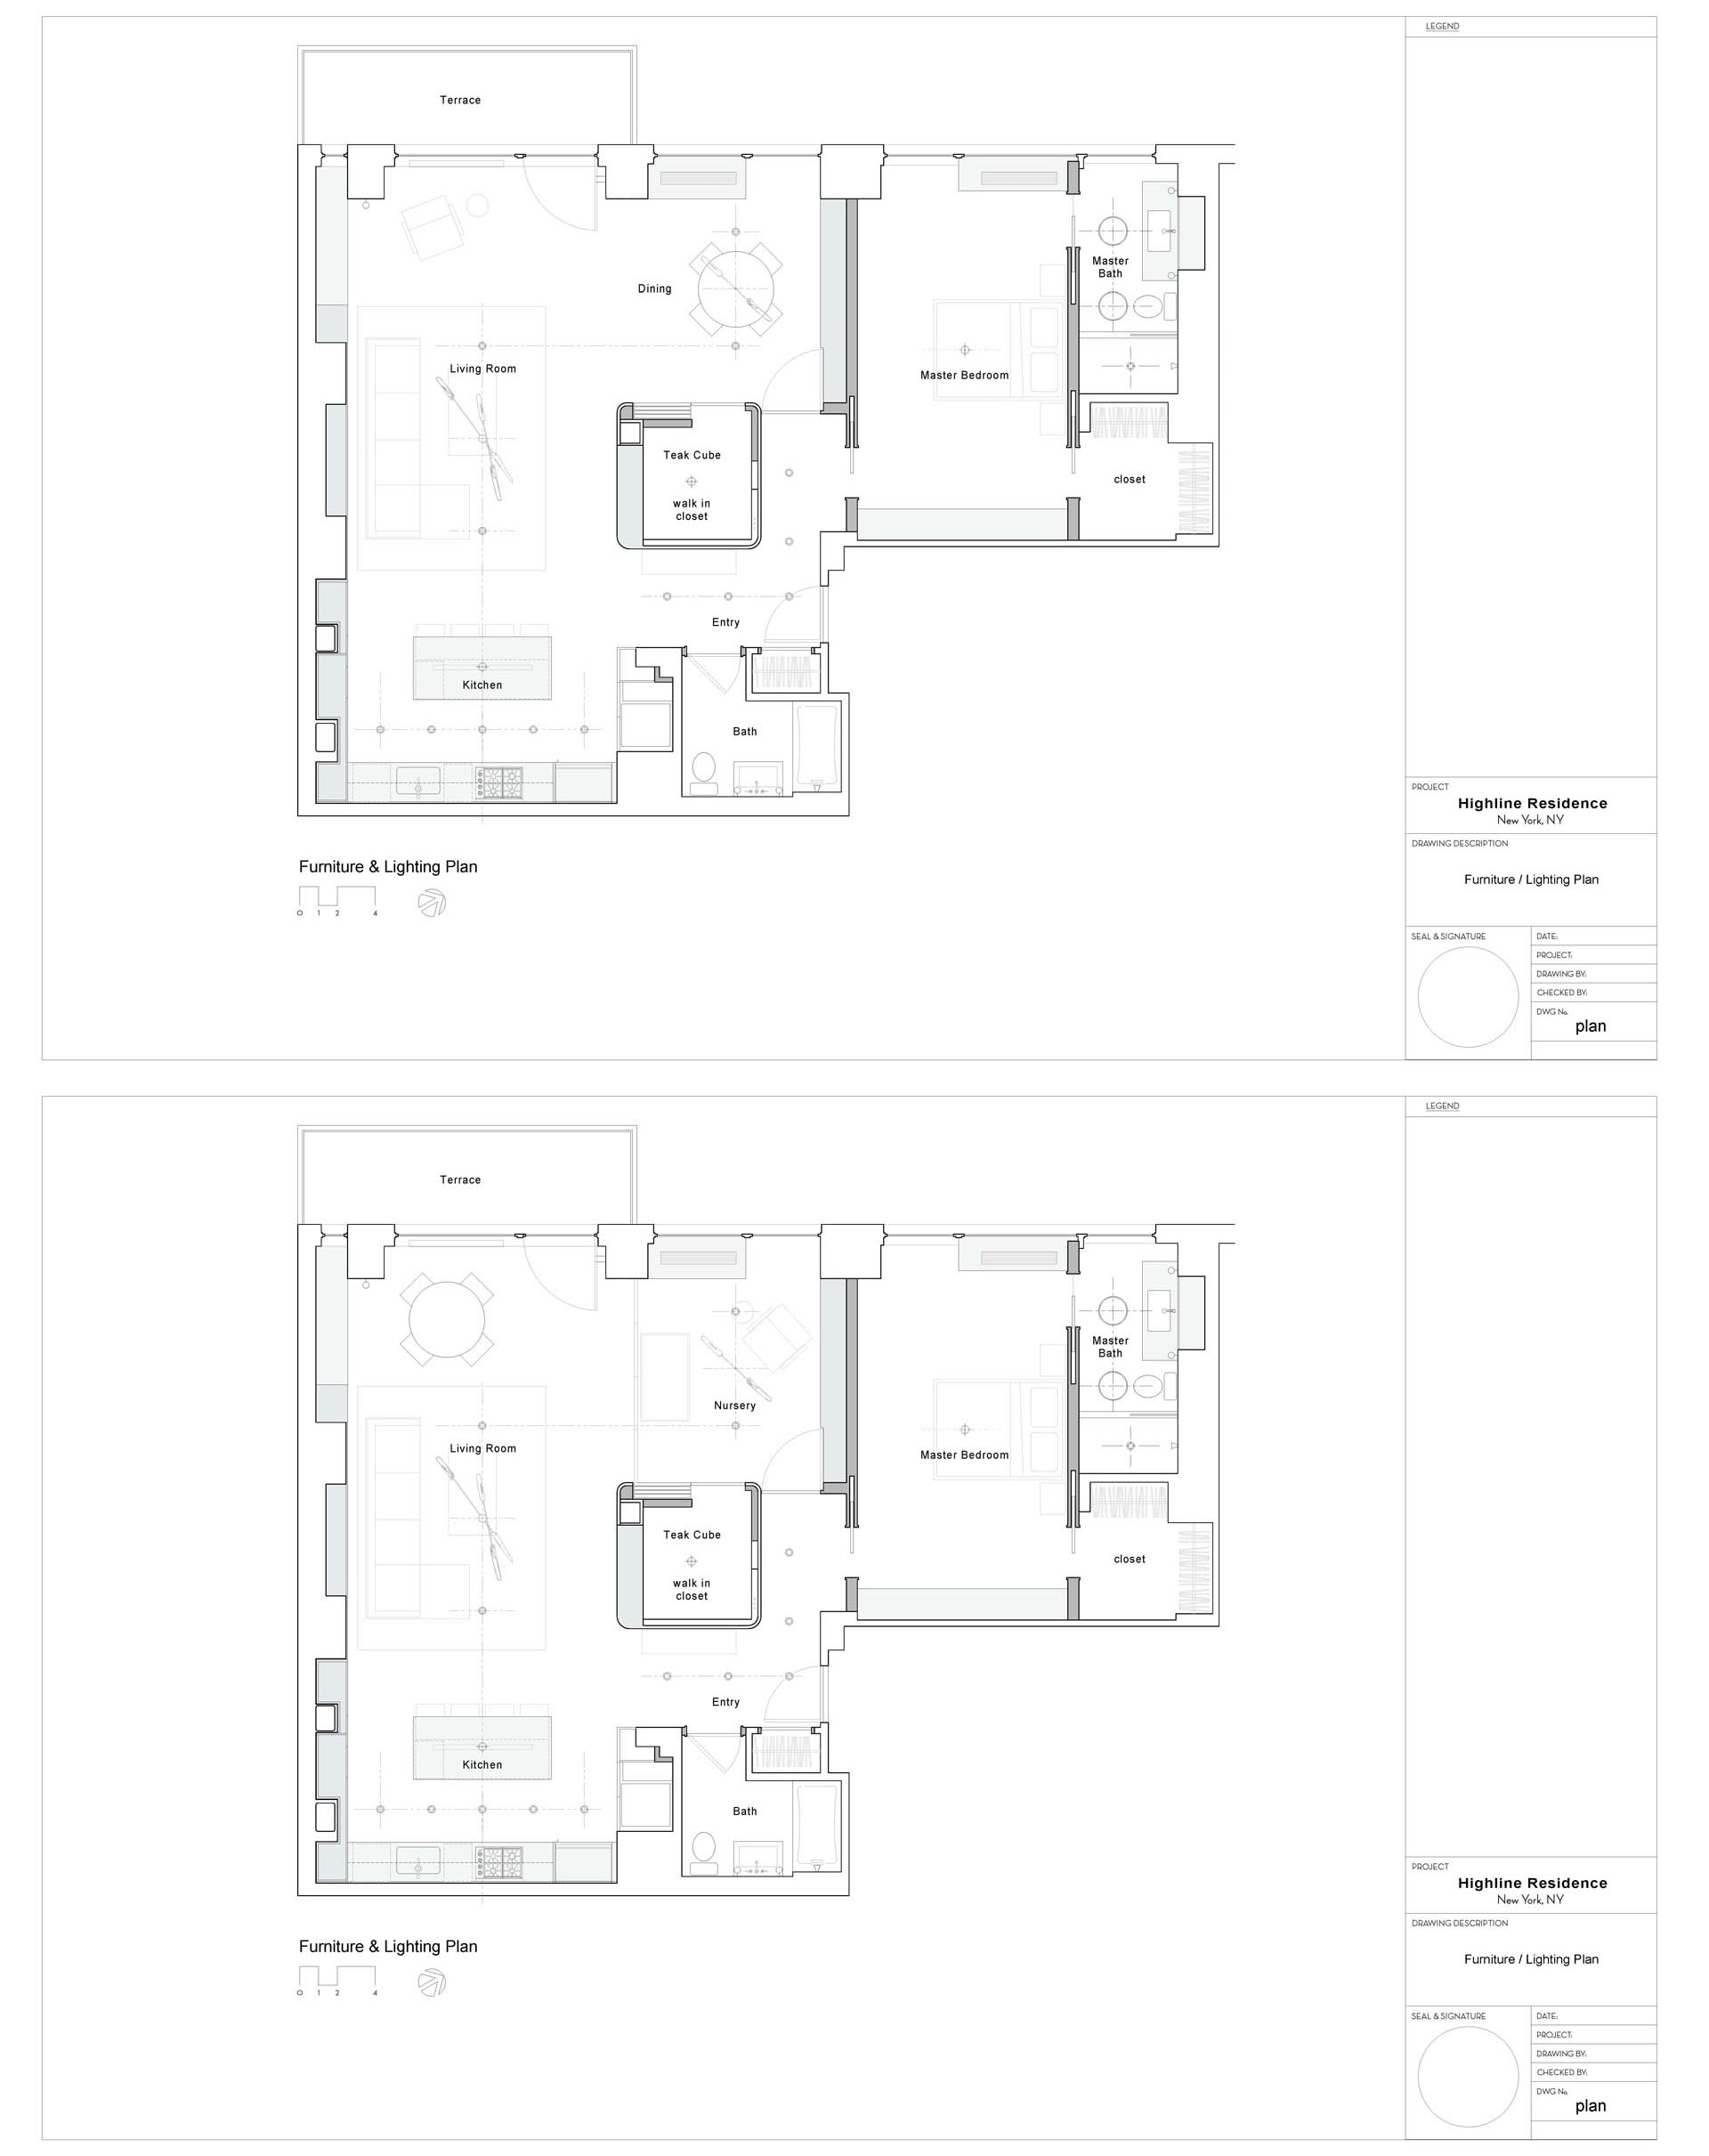 An apartment floor plan that shows how the dining room can transition into a bedroom.